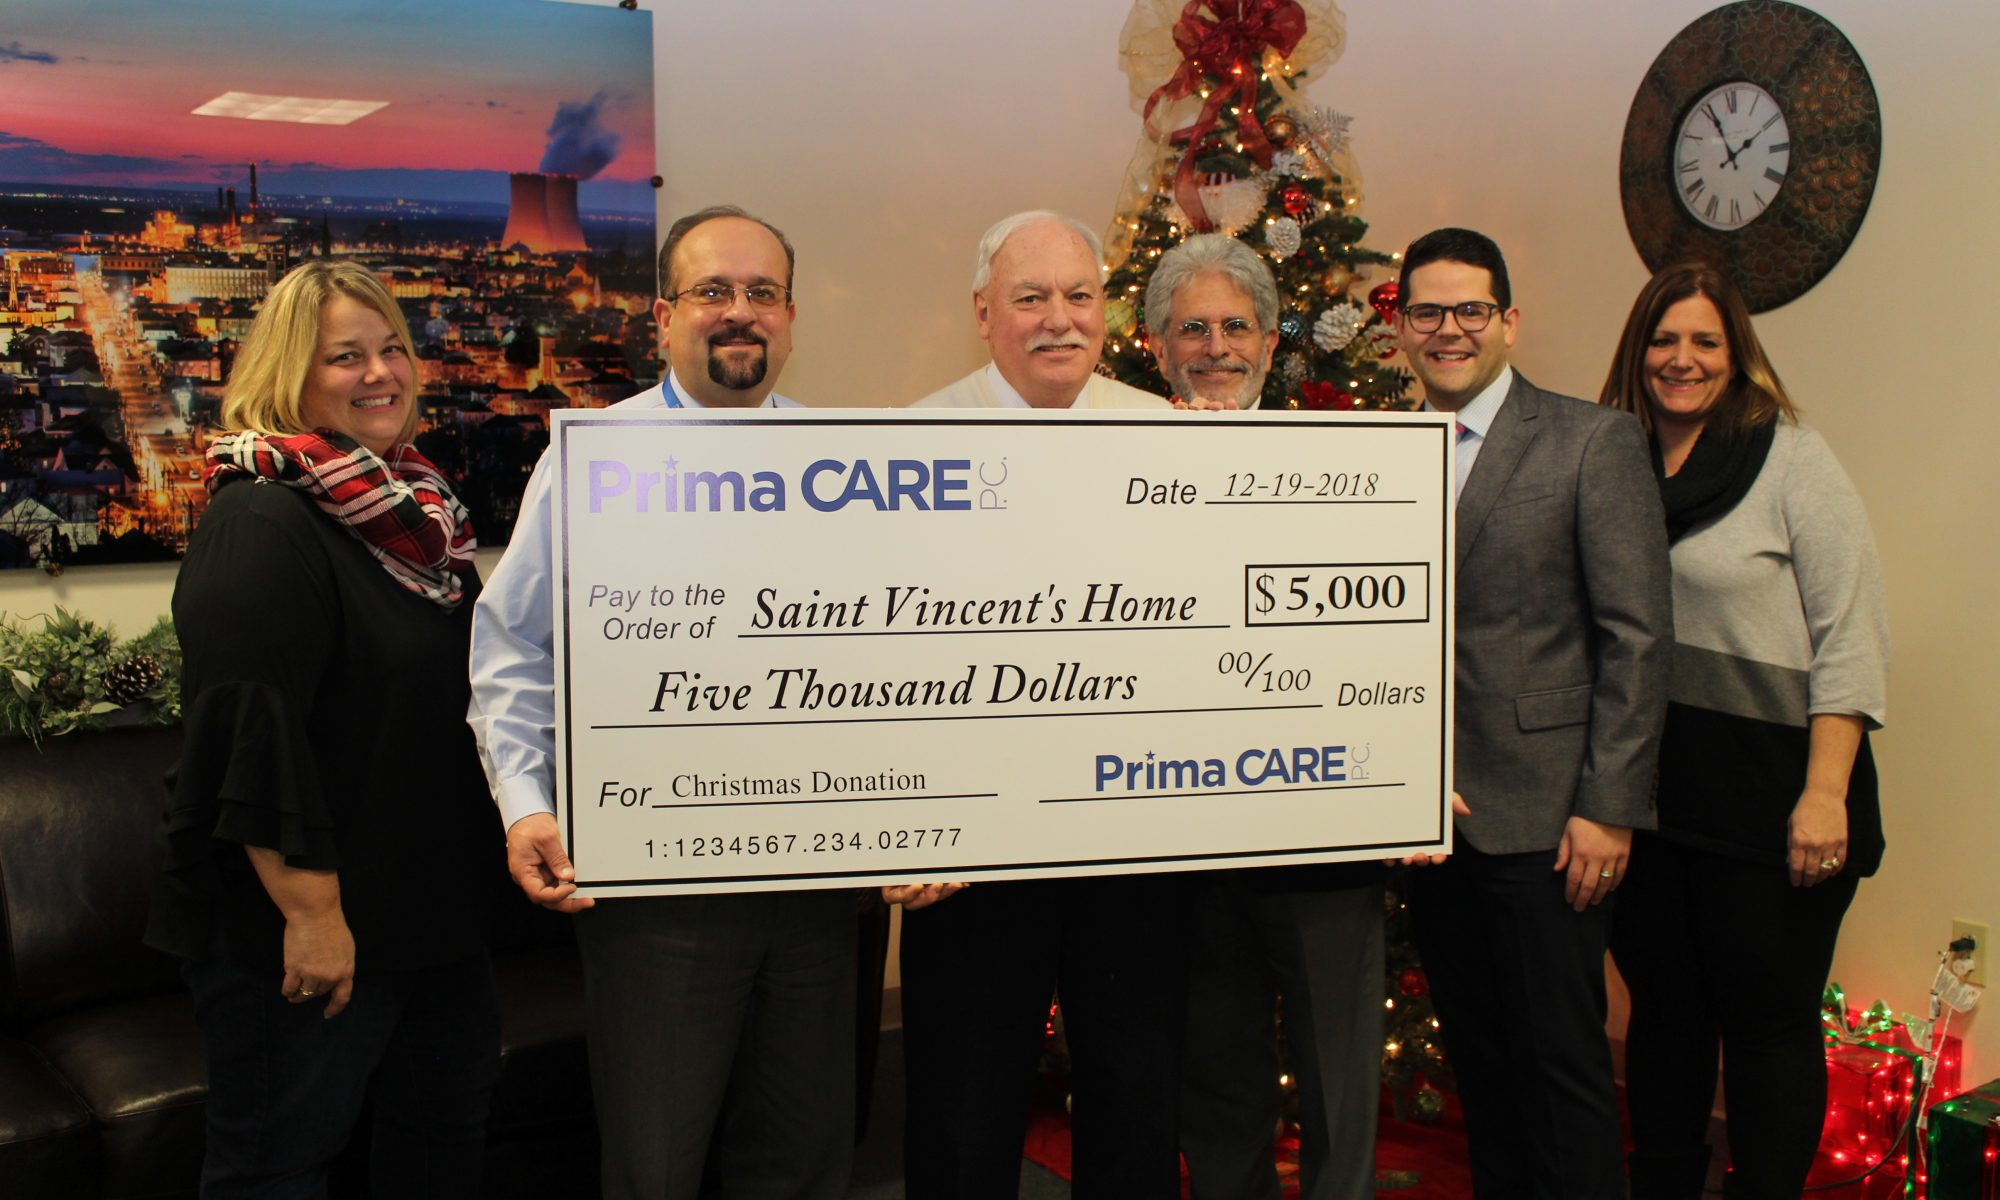 Prima CARE Raises $5,000 for Saint Vincent's